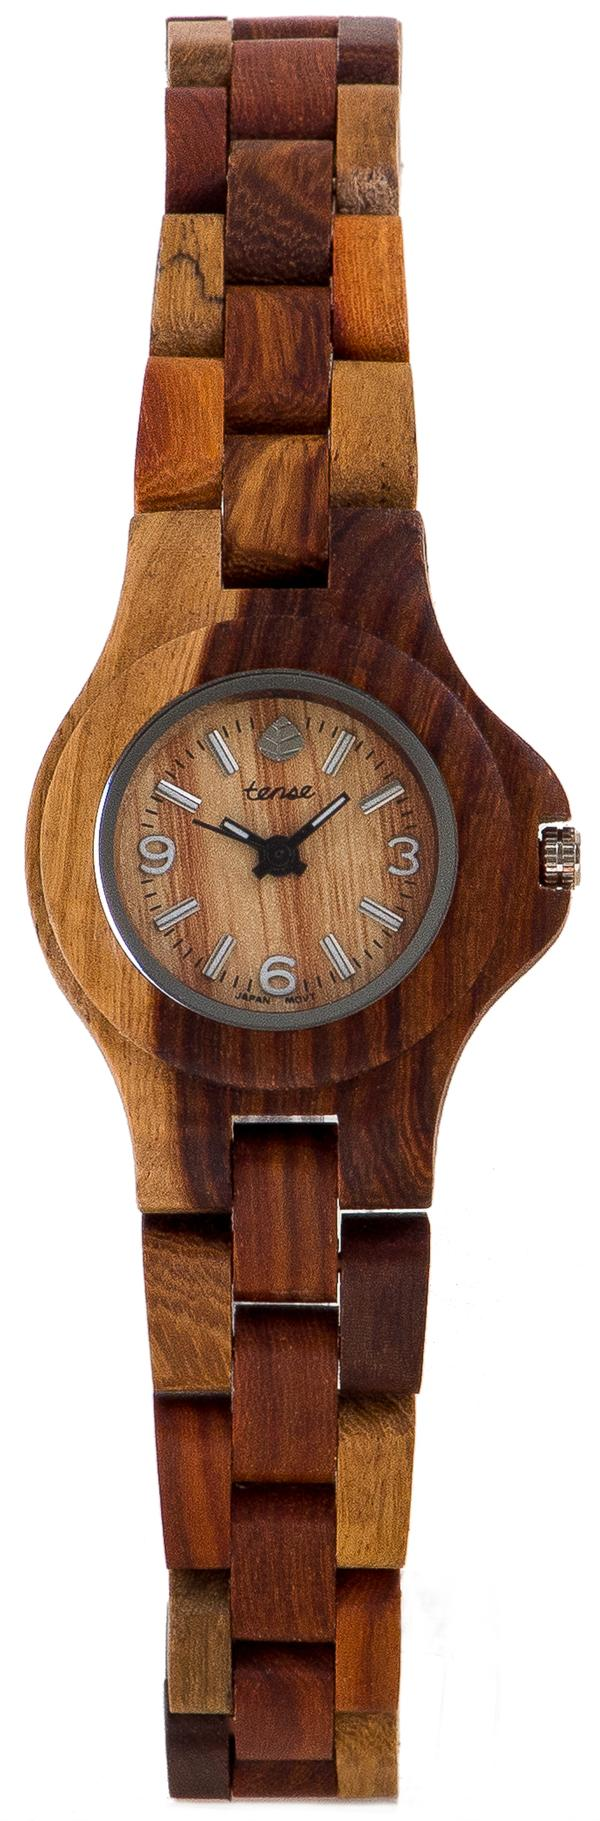 Tense Wooden Watch - Women's Mini Northwest Watch (L4300I)